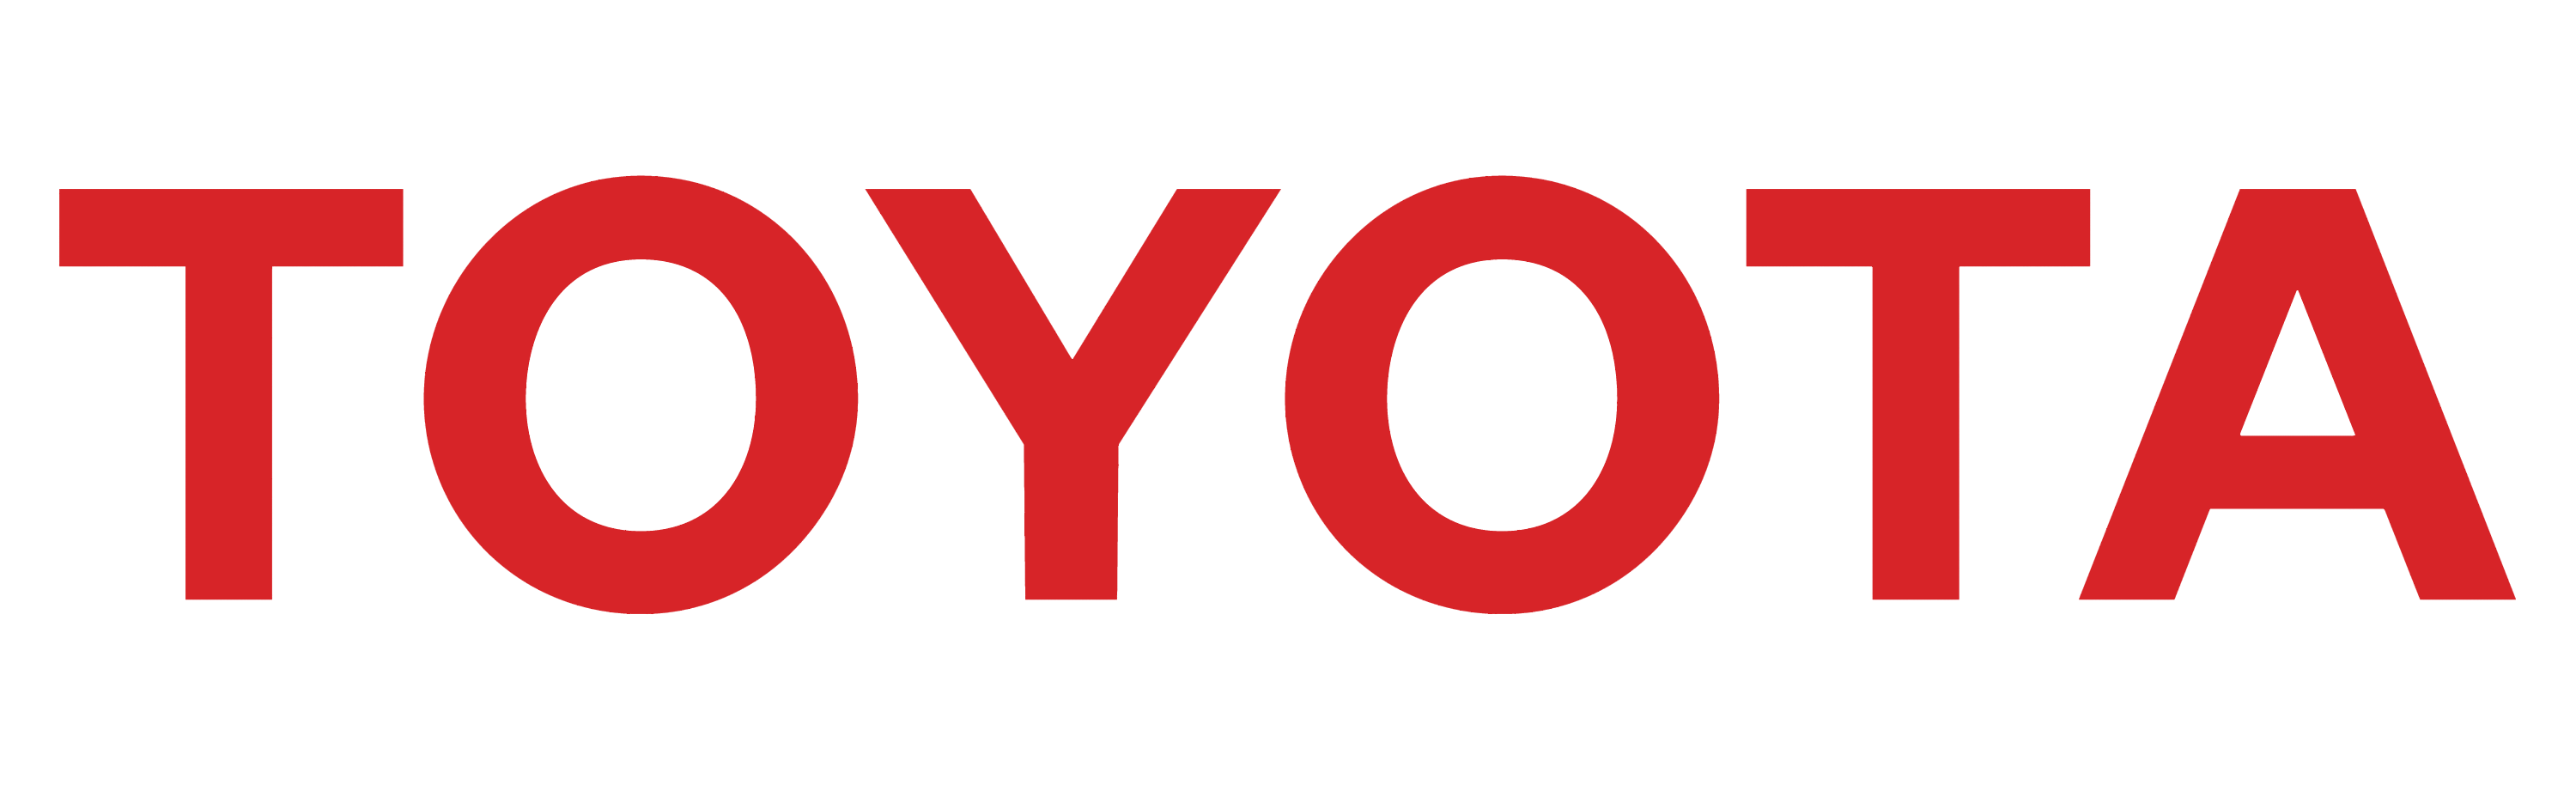 //www.texasstatesociety.org/wp-content/uploads/2019/07/Toyota-text-logo-3000x550-1.png